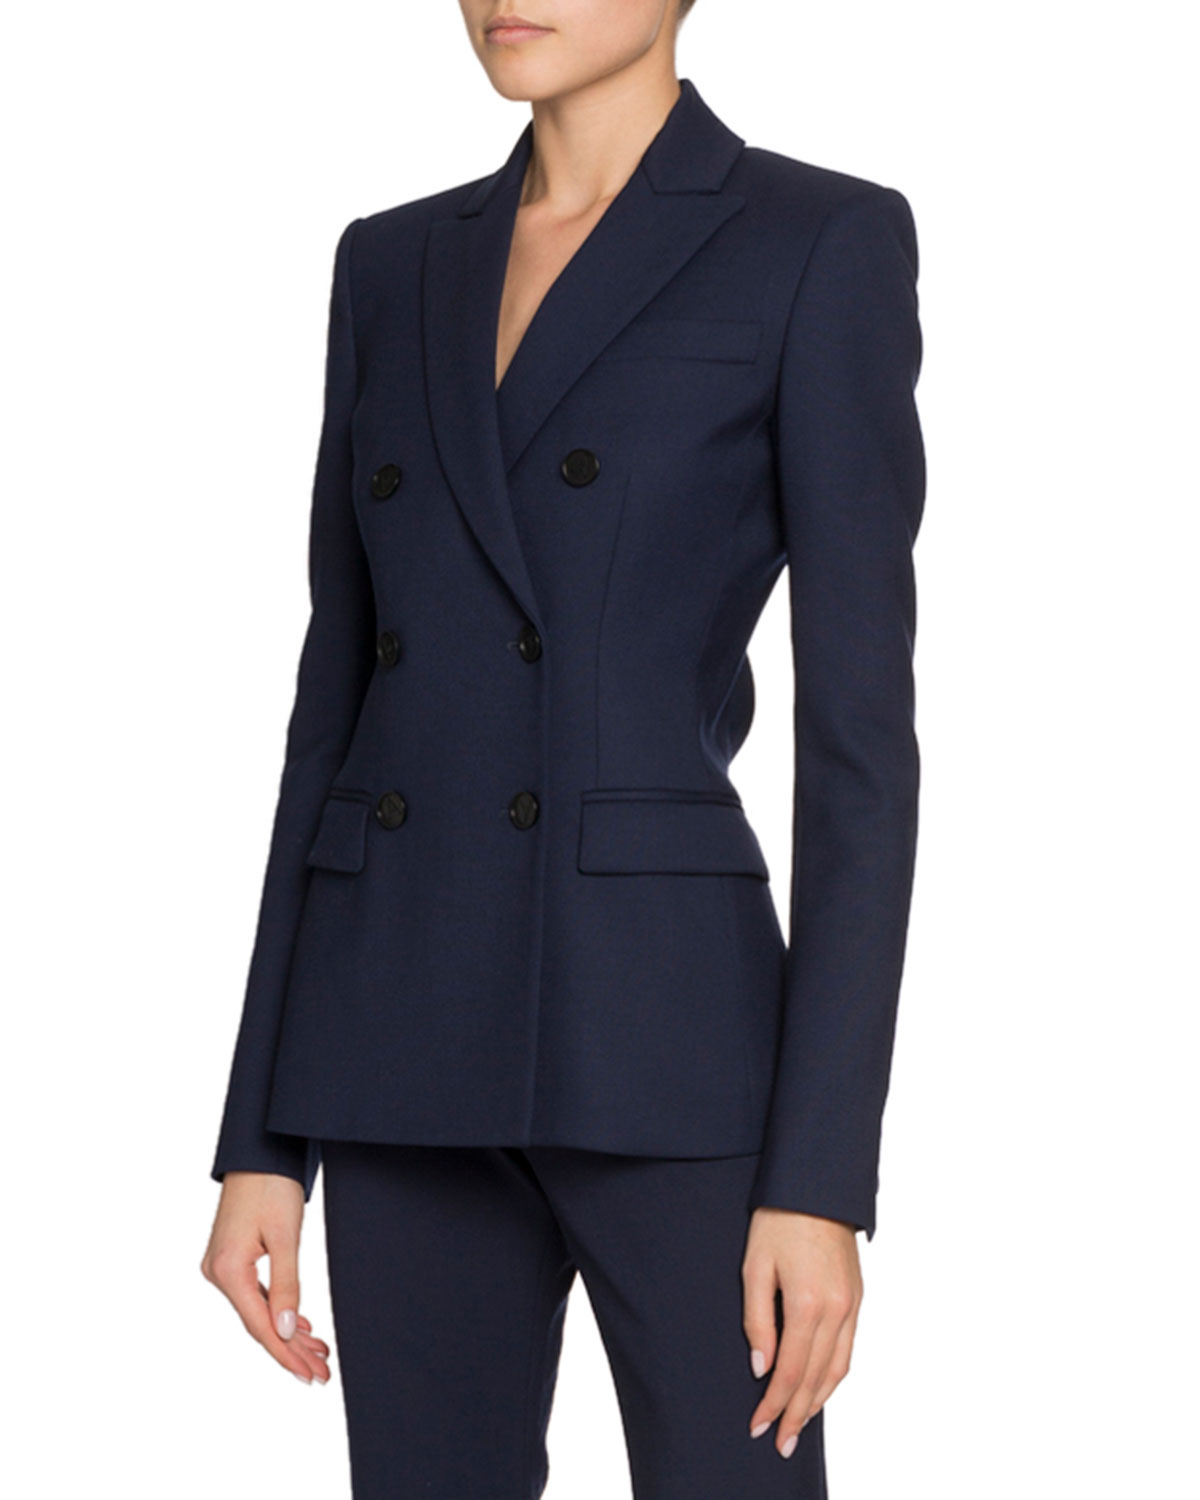 Altuzarra Blazers DOUBLE-BREASTED STRETCH WOOL BLAZER